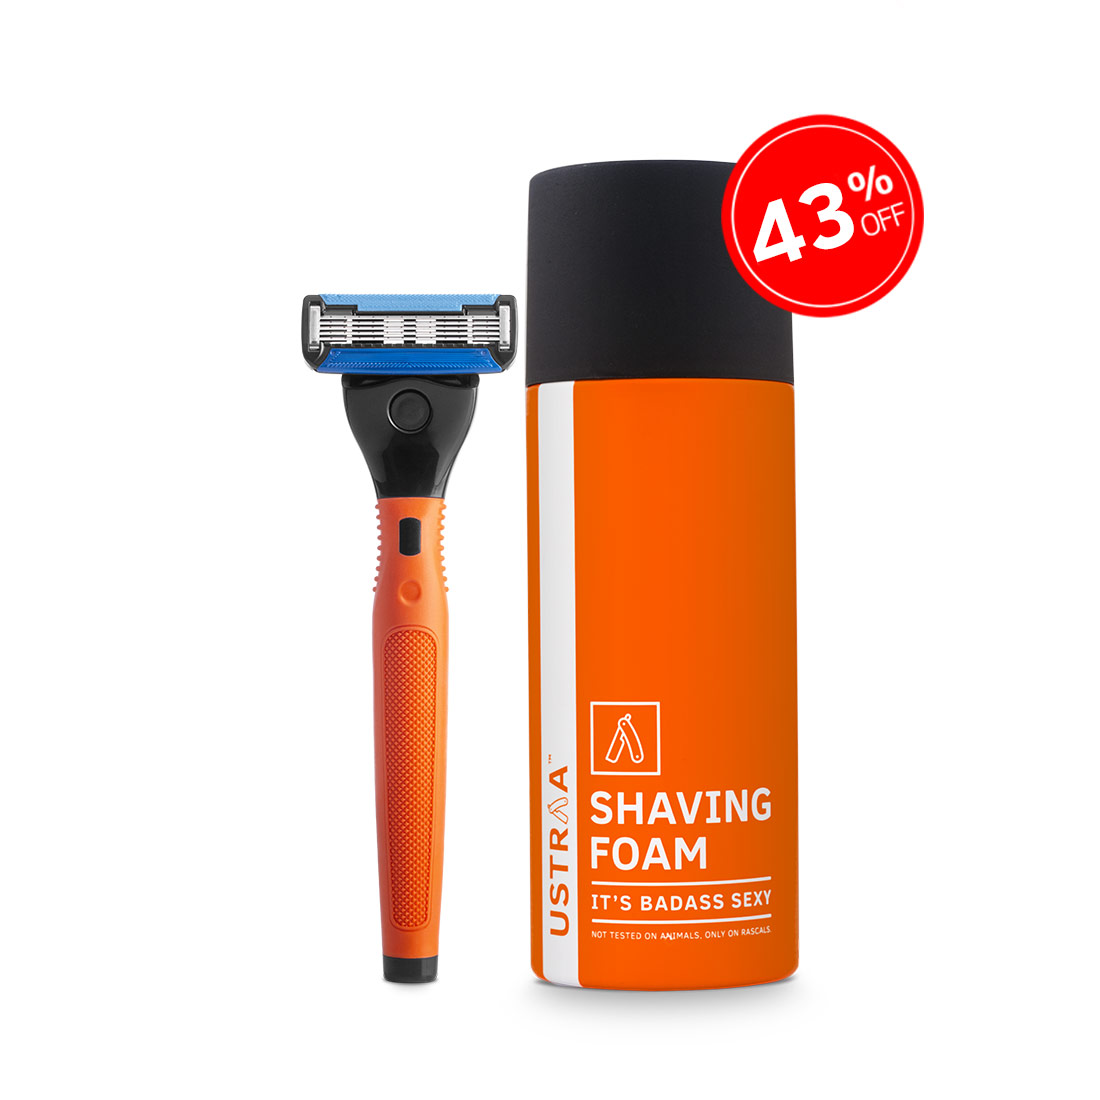 Gear 5 Razor(Orange) and Shaving Foam(Badass Sexy)